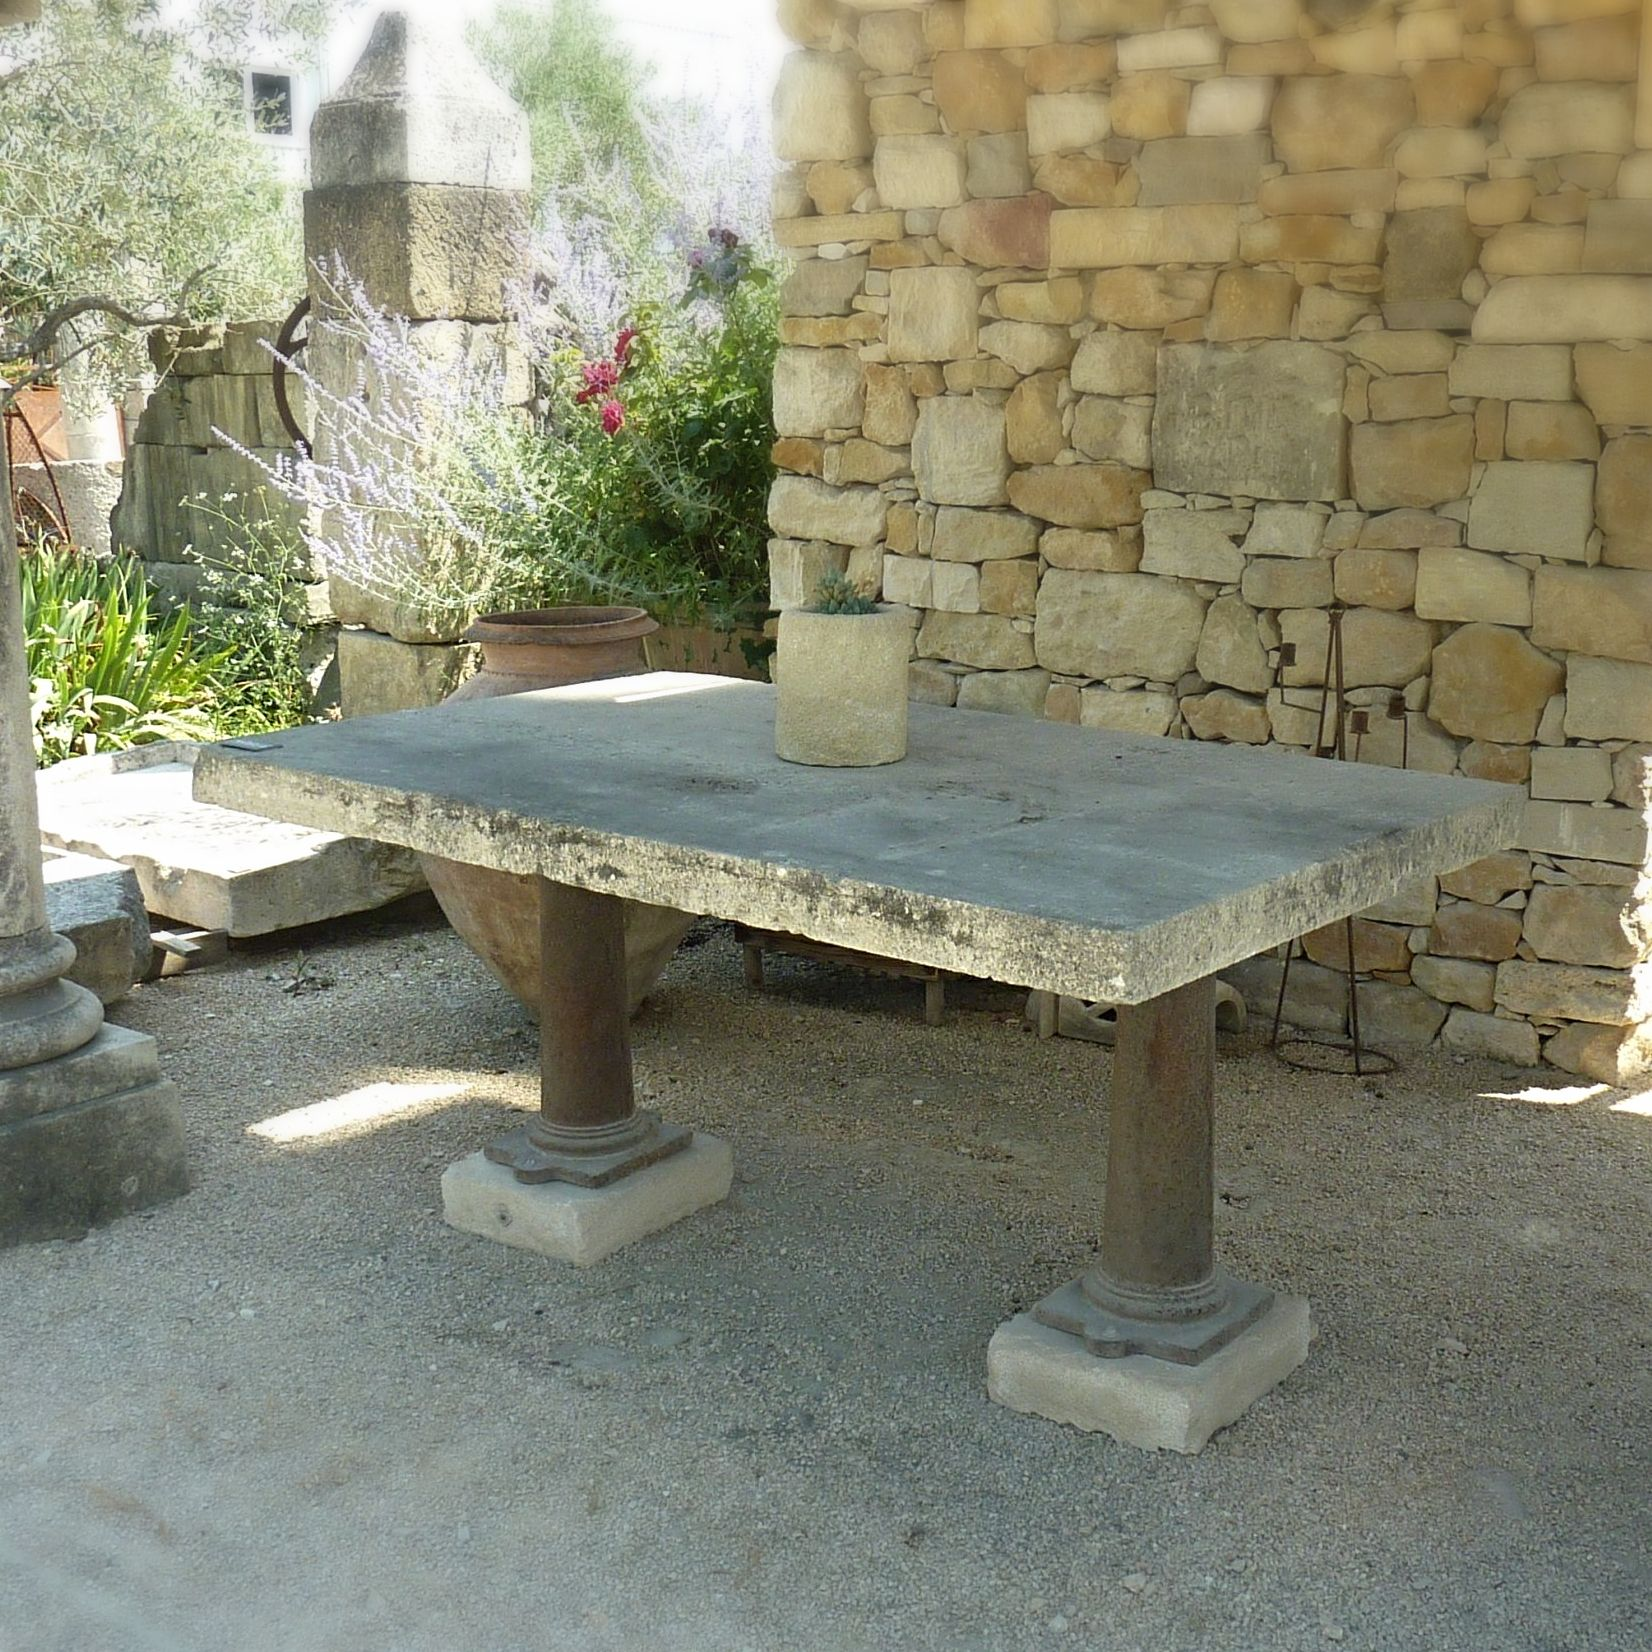 Old table for 8 guests, made of old materials - old garden furniture.